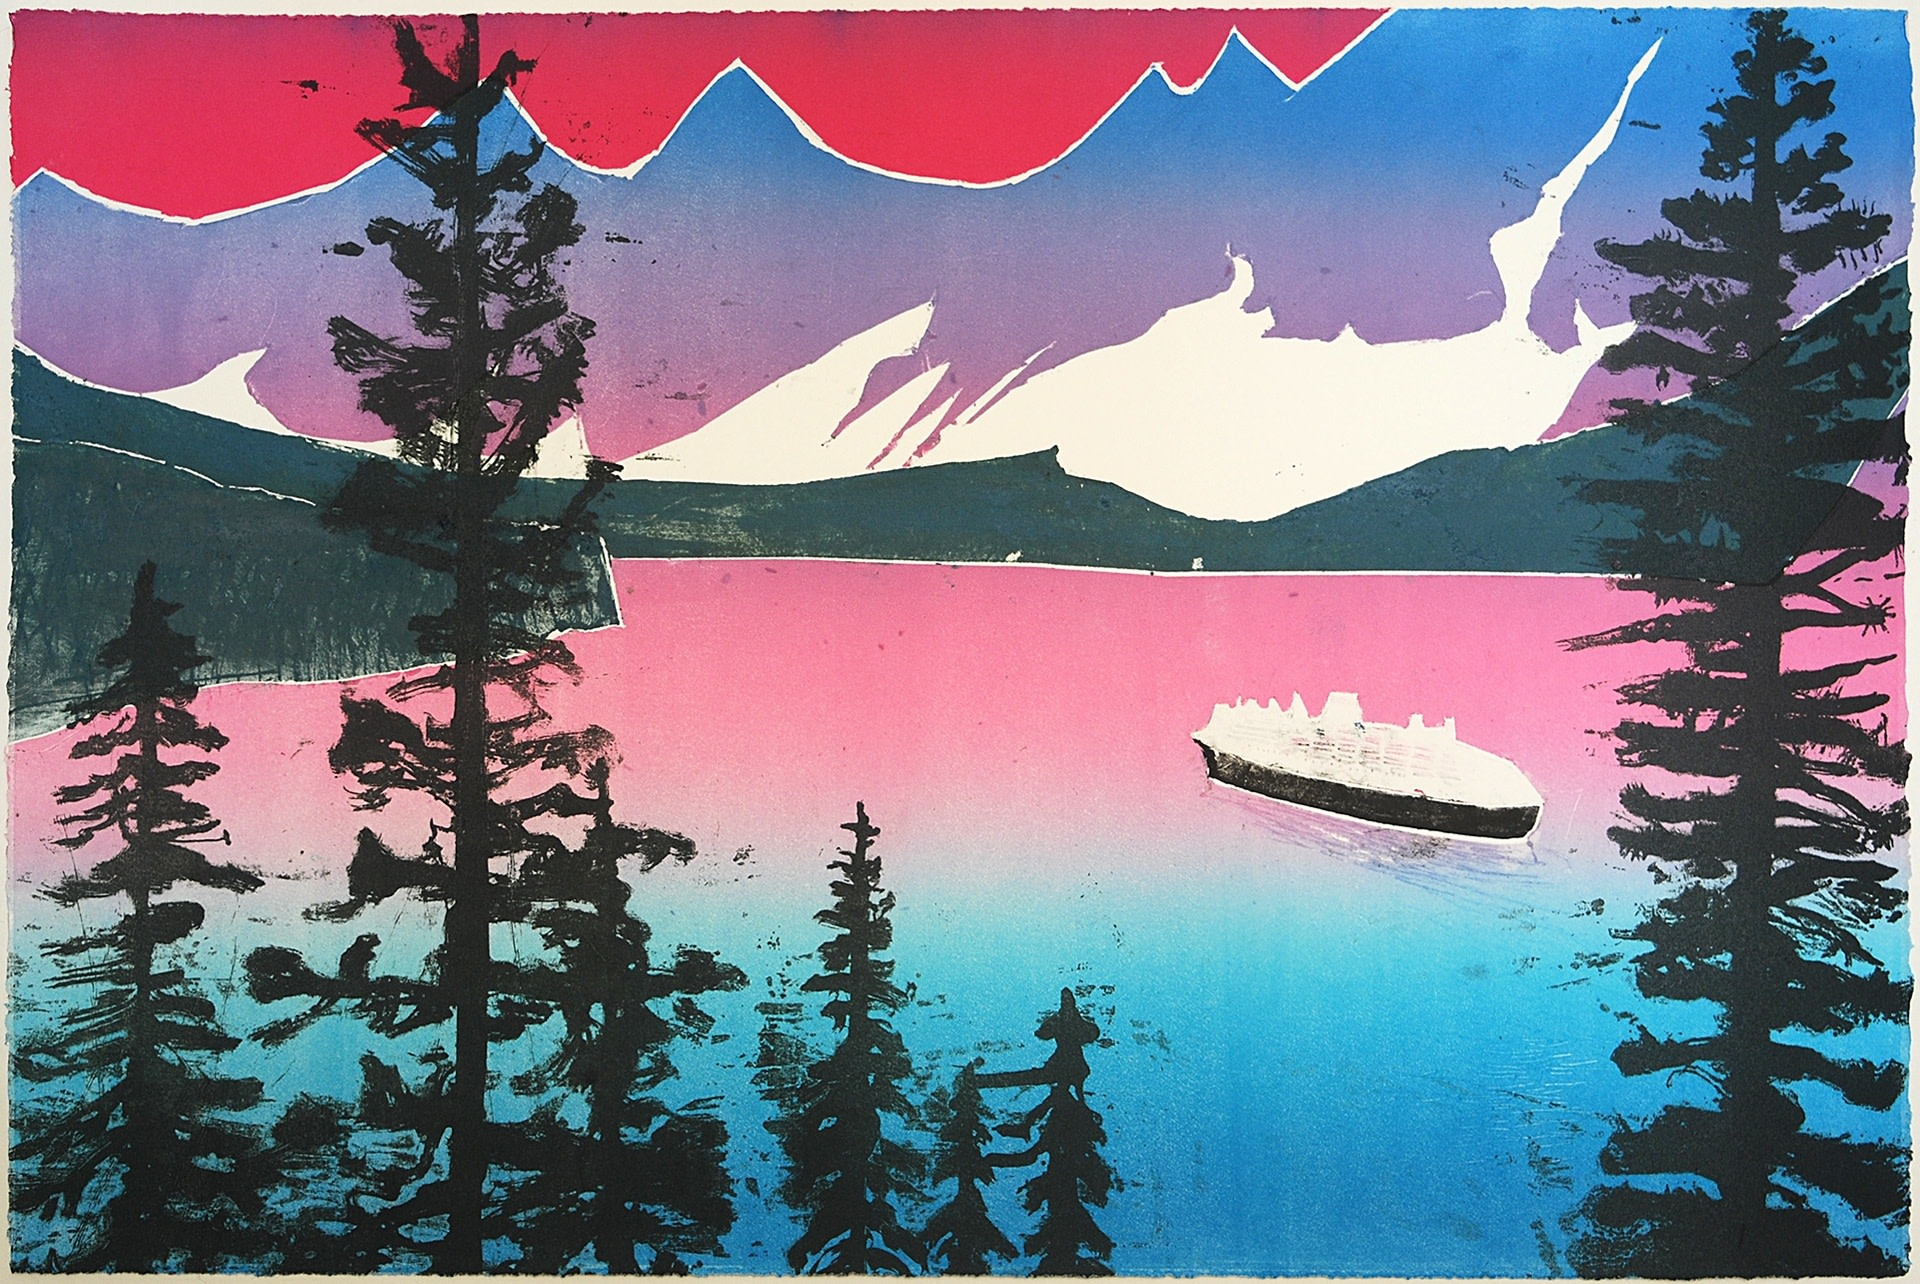 """<span class=""""link fancybox-details-link""""><a href=""""/exhibitions/17/works/image_standalone812/"""">View Detail Page</a></span><p><strong>Sadie Tierney</strong></p><p>Fjord Through Pines</p><p>kitchen lithography, colorgraph and hand colouring, ed of 7</p><p>44 x 63cm</p><p>£500 framed</p><p>£450 unframed</p>"""